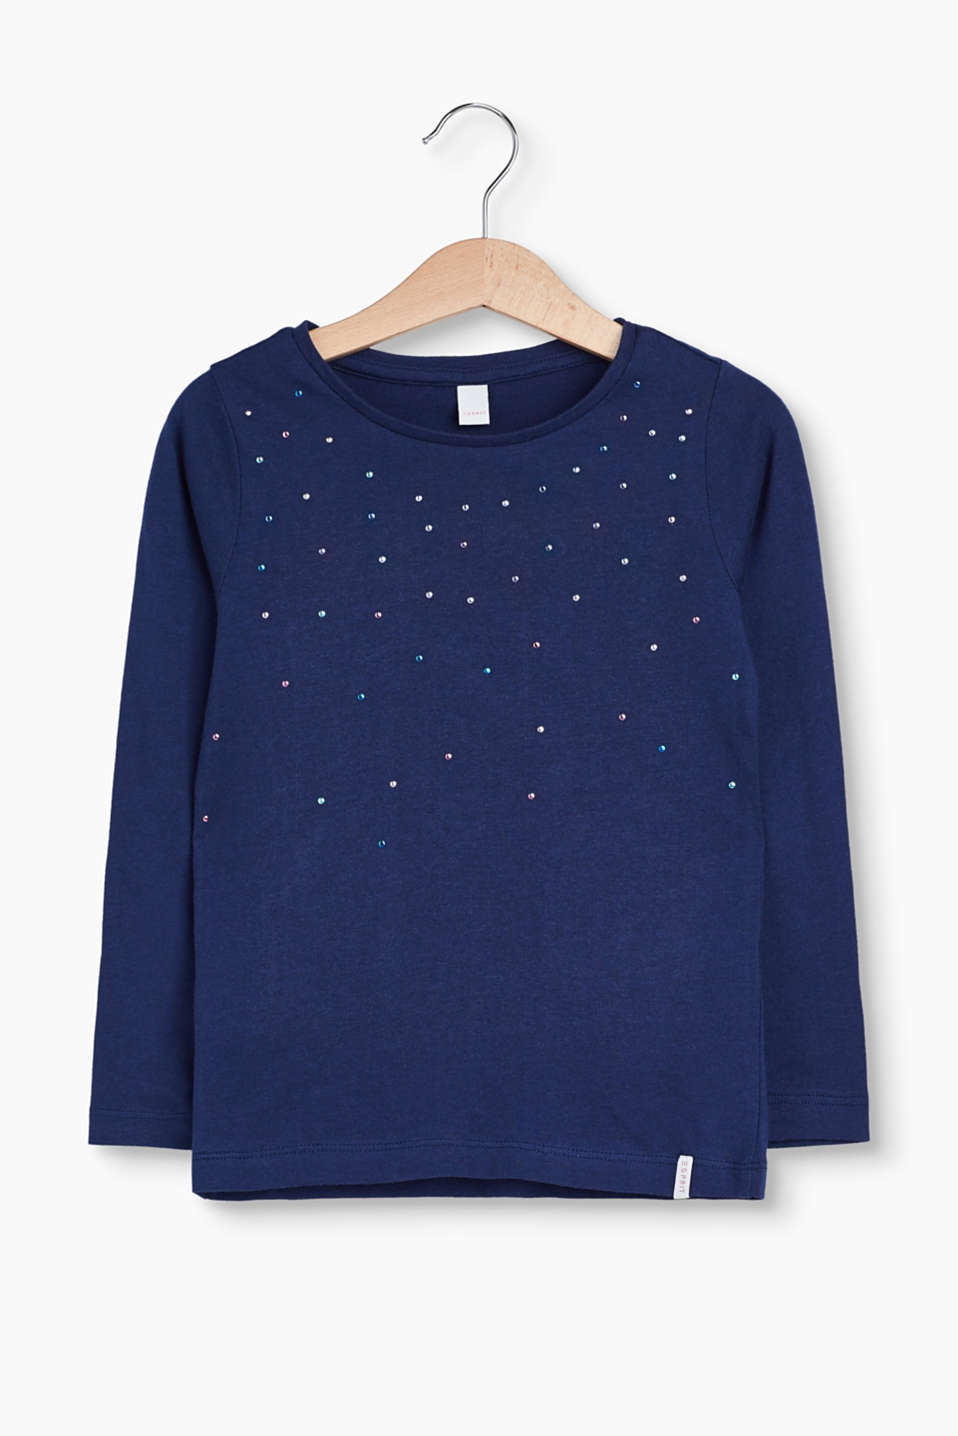 Colourful studs on the front give this long sleeve top its exceptionally shiny look.